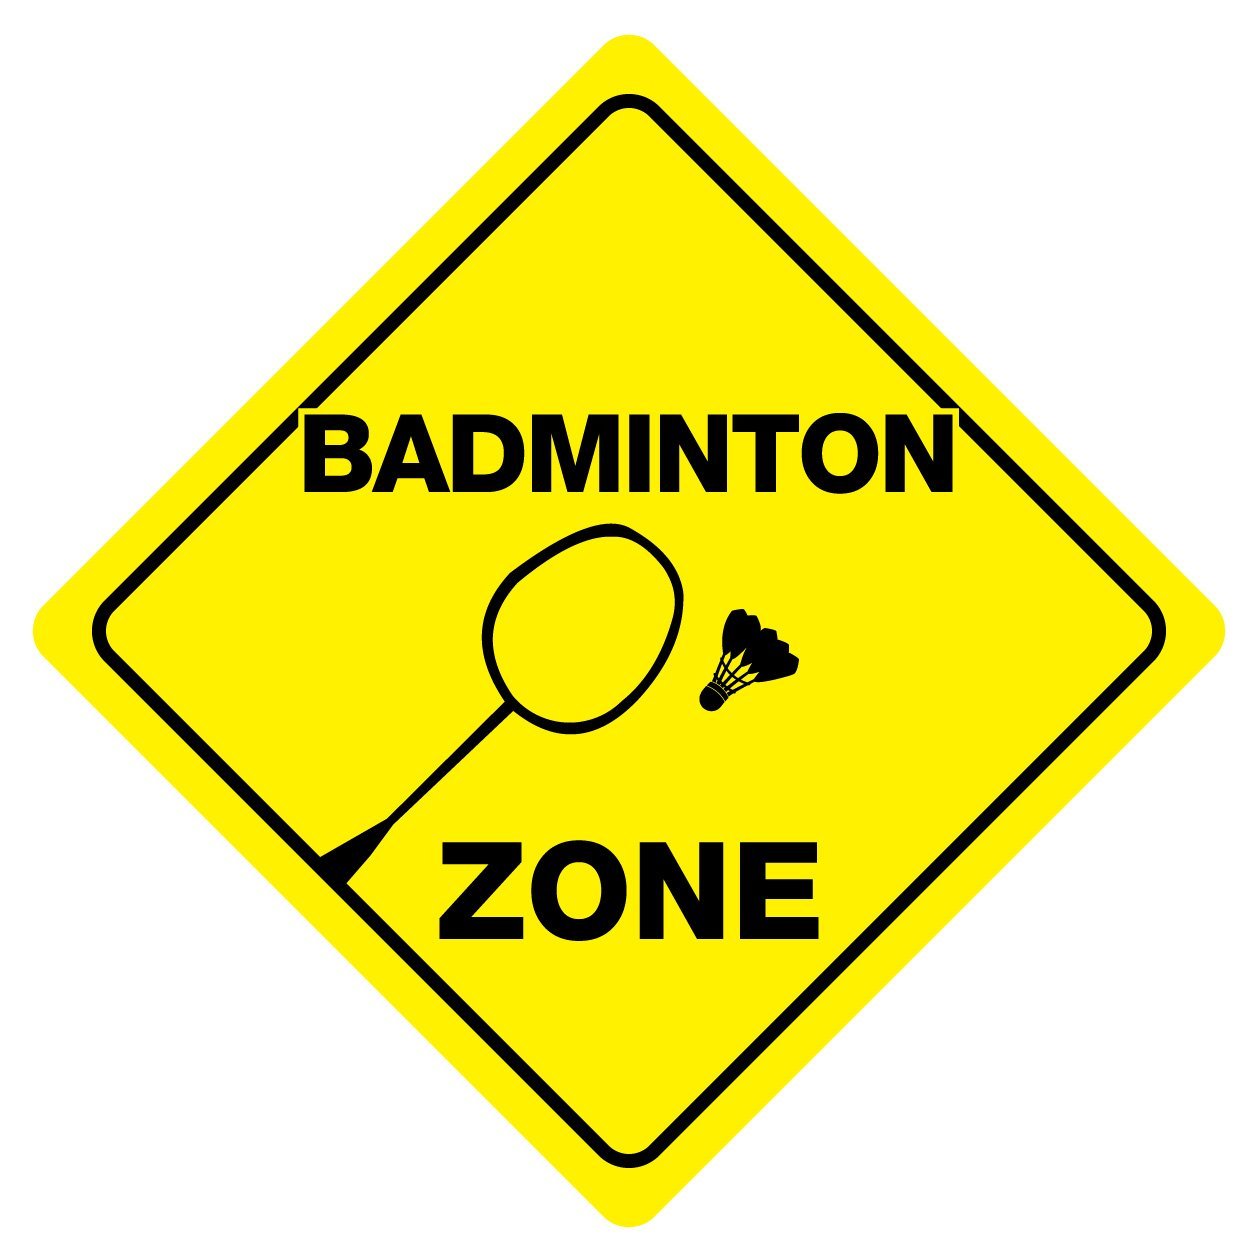 BADMINTON ZONE Funny Novelty Xing Sign